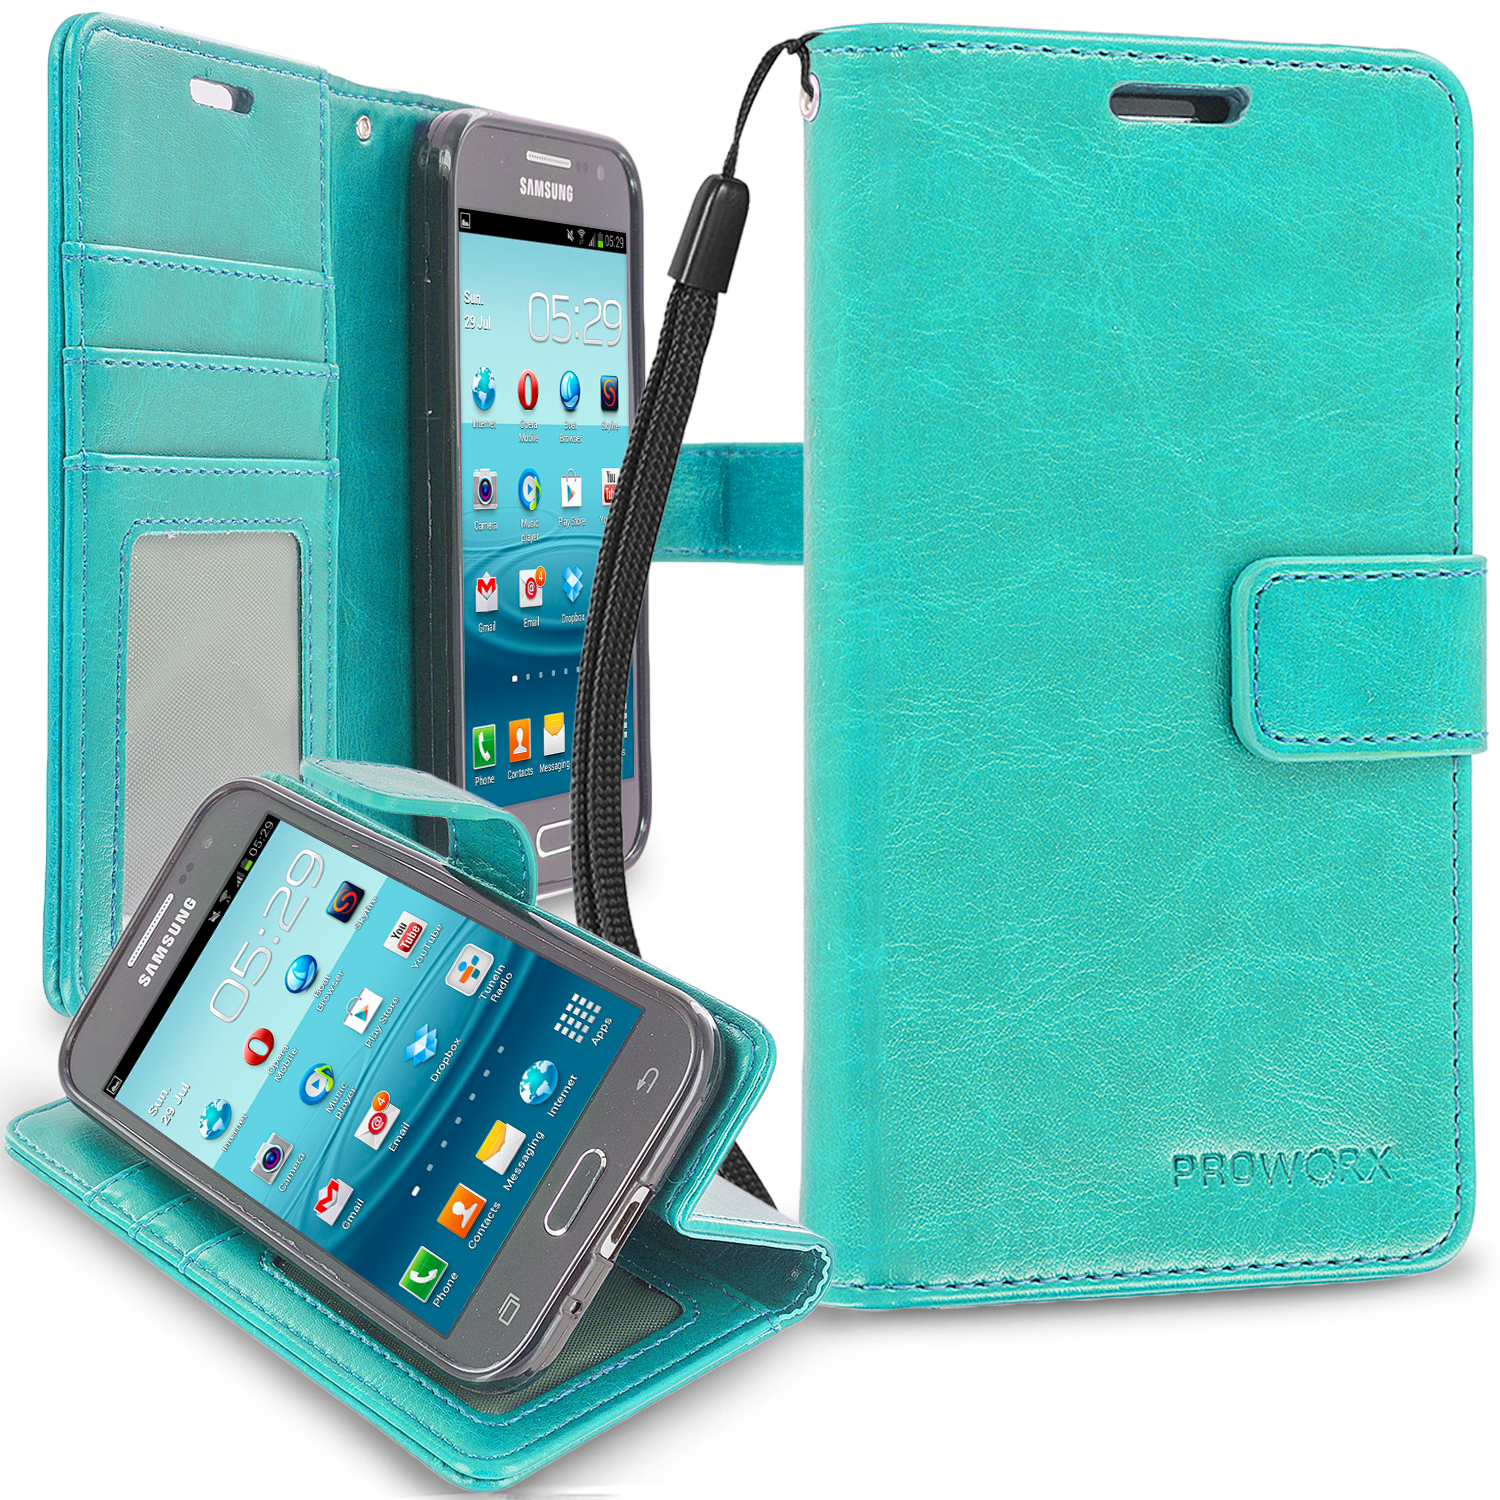 Samsung Galaxy Prevail LTE Core Prime G360P Mint Green ProWorx Wallet Case Luxury PU Leather Case Cover With Card Slots & Stand